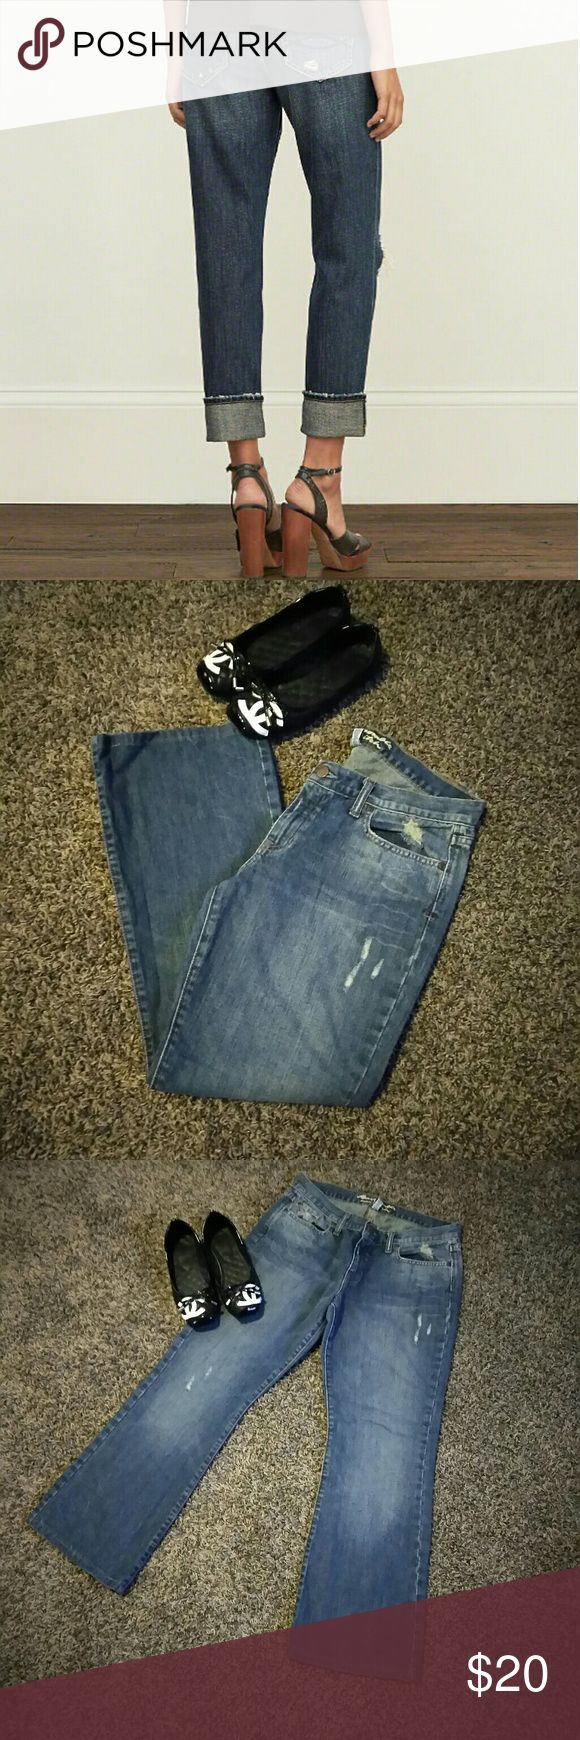 Abercrombie and Fitch jeans my sister's? only used ones for a teme party.... girl's need to be dressed as a boy and boy dressed as a girl .....lol!! she tell me i don't know how to splain how jeans look but looks very lose and square and baggie really like my boyfriend jaja so i realize its a very boyfriend look jeans size 10R Abercrombie & Fitch Jeans Boyfriend